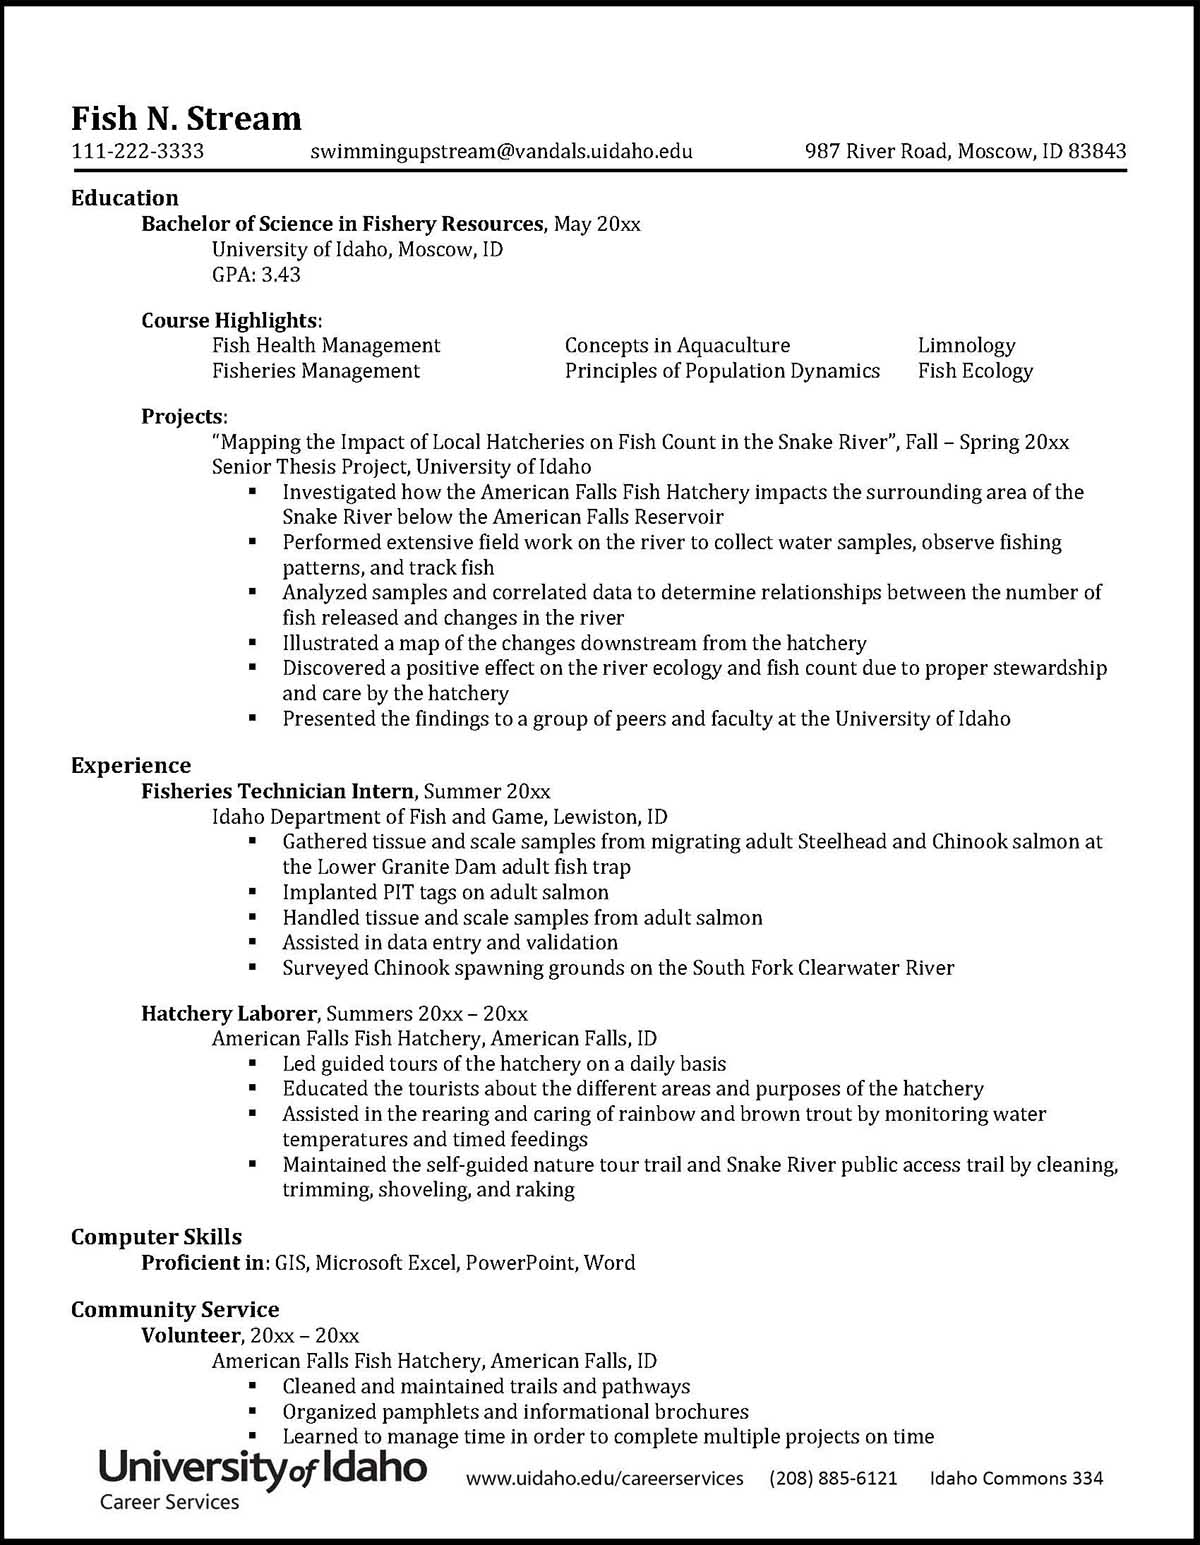 resumes and cvs - career services